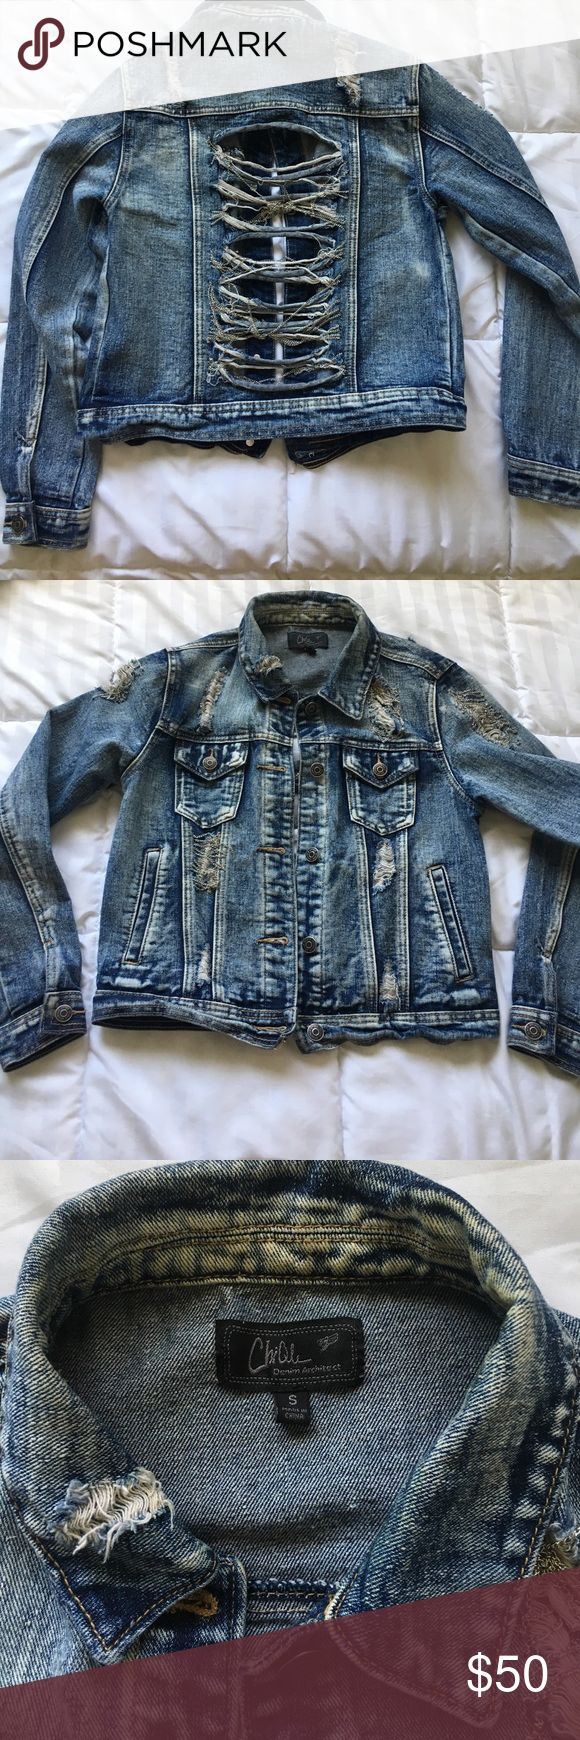 Distressed Jean Jacket A distressed jean jacket with silver chains. I absolutely LOVE this jacket but its time to let it go💕 Got it in a boutique online. Please no lowball offers. First two pictures are used to show how it looks on. Its is NOT that color. Zara Jackets & Coats Jean Jackets